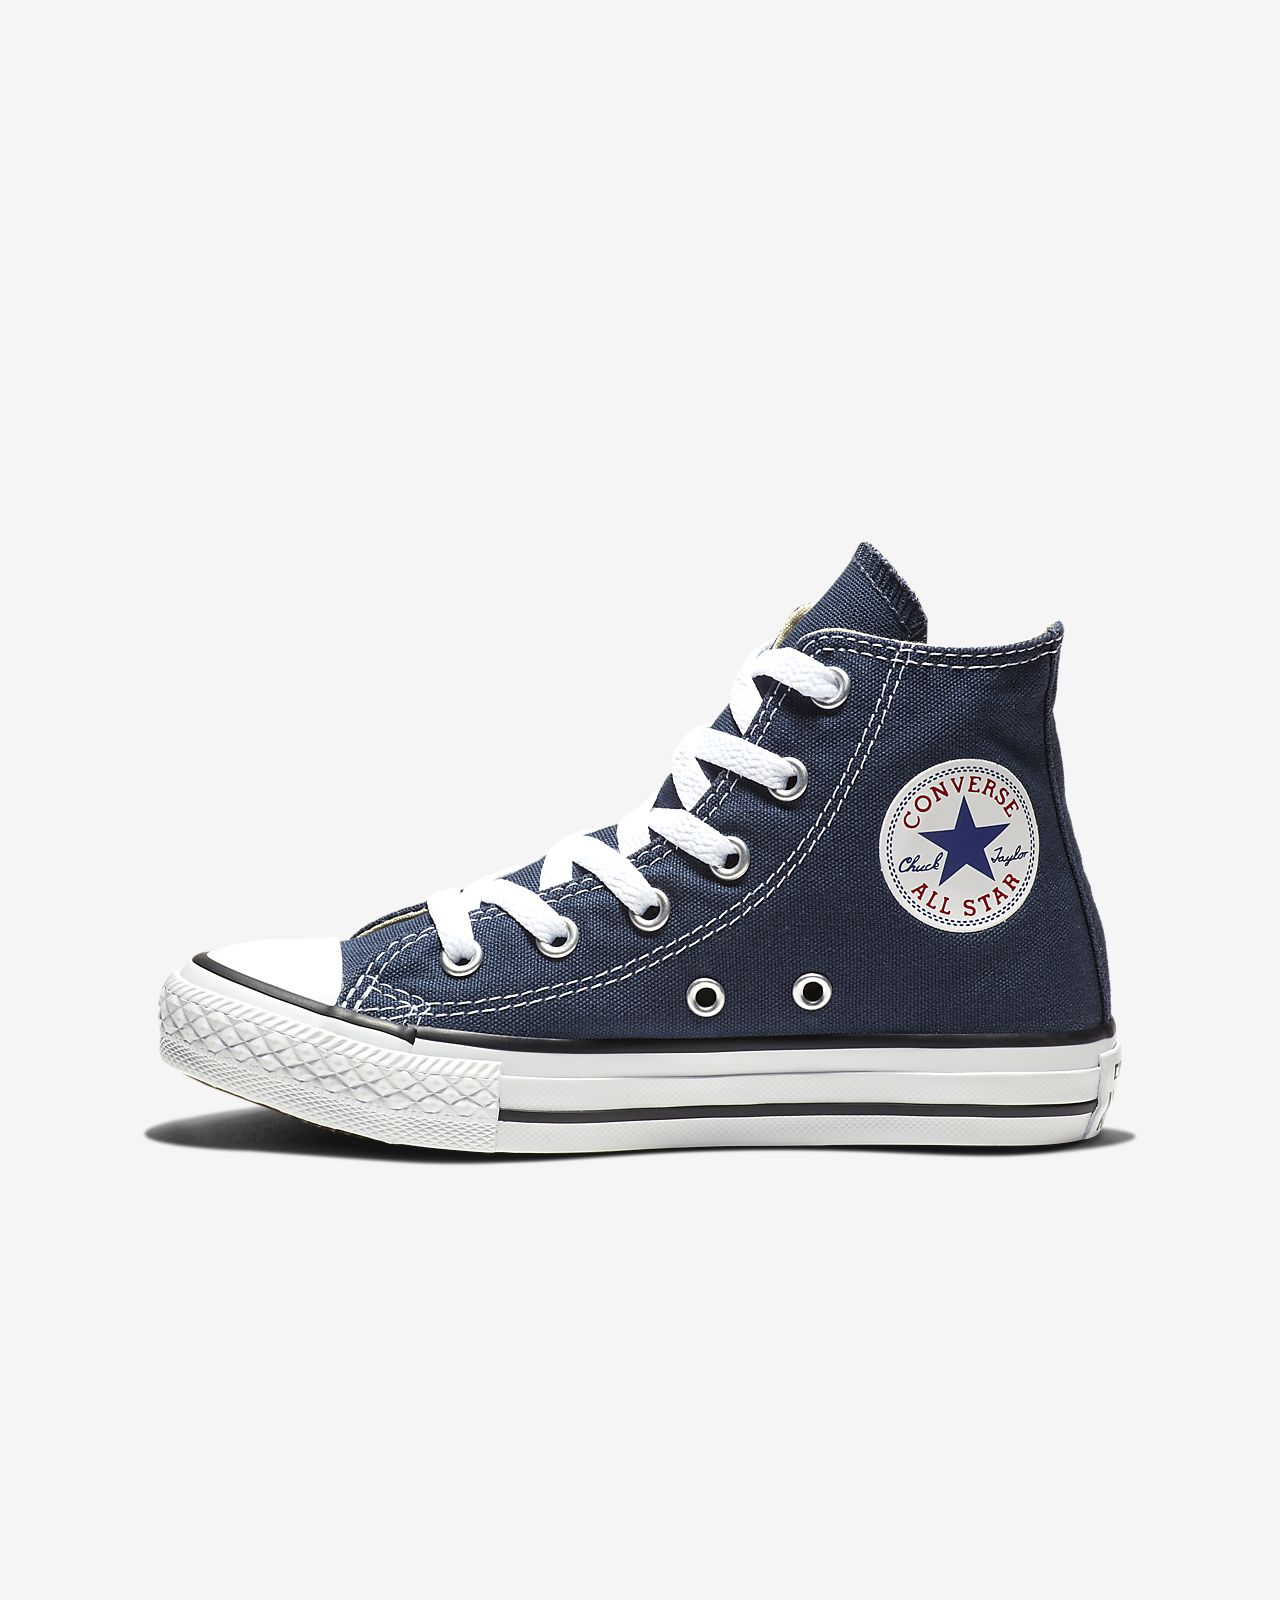 610adb8d9df Converse Chuck Taylor All Star High Top (10.5c-3y) Little Kids  Shoe ...